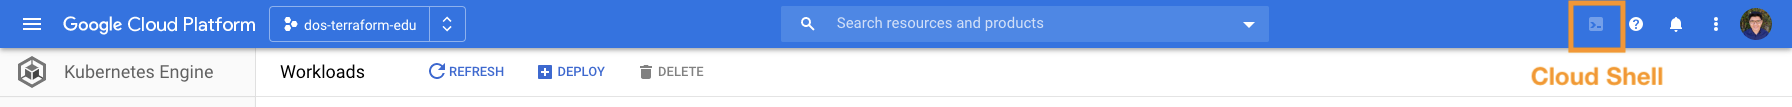 "Google Cloud header with ""Cloud Shell"" option pointed out (top right corner near the help button)"